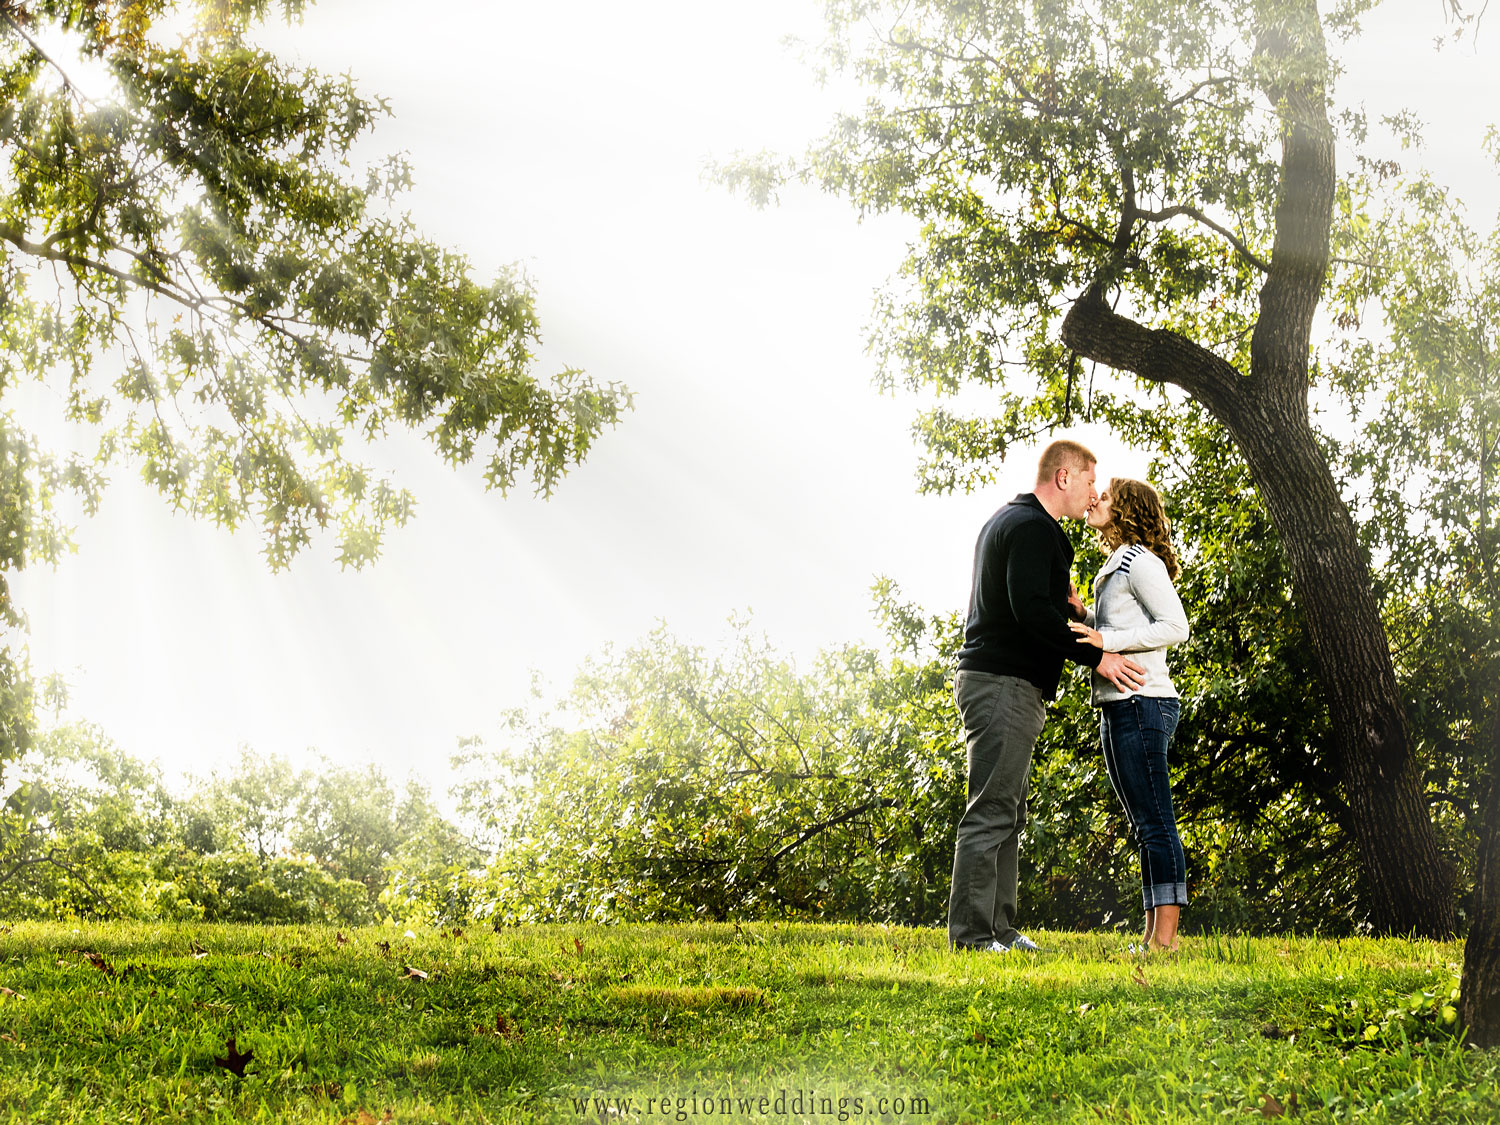 Sun streams through the trees as a couple kisses in this romantic engagement photo.